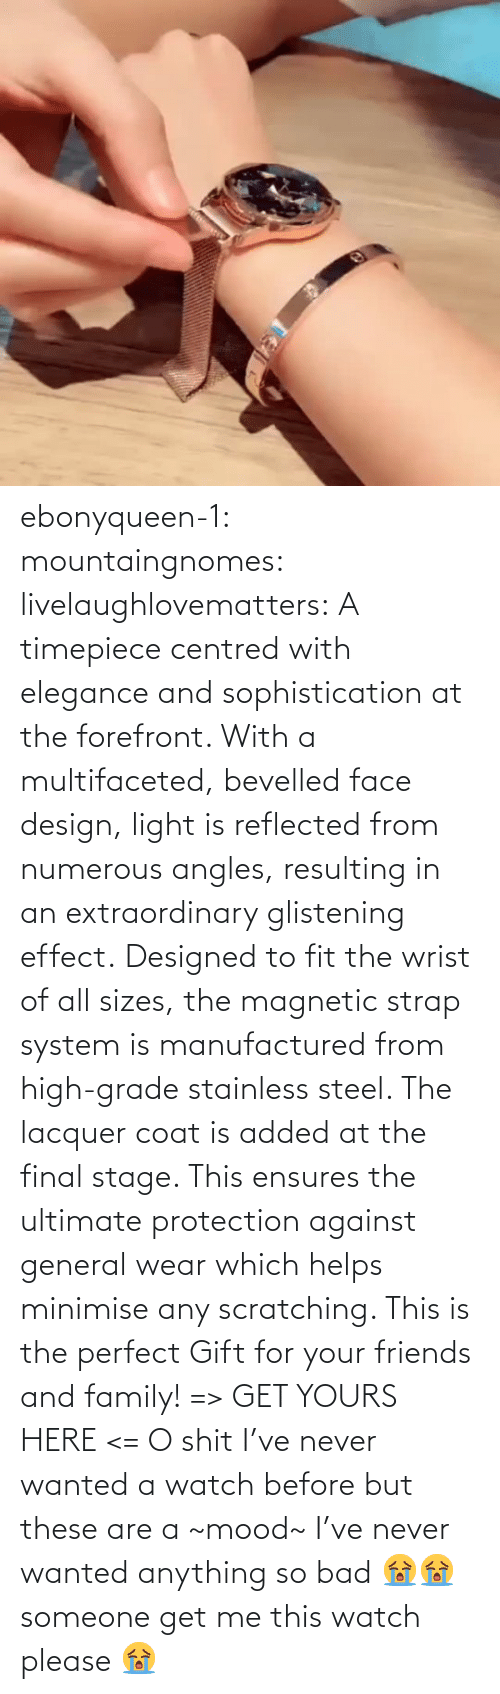 general: ebonyqueen-1:  mountaingnomes:  livelaughlovematters:  A timepiece centred with elegance and sophistication at the forefront. With a multifaceted, bevelled face design, light is reflected from numerous angles, resulting in an extraordinary glistening effect. Designed to fit the wrist of all sizes, the magnetic strap system is manufactured from high-grade stainless steel. The lacquer coat is added at the final stage. This ensures the ultimate protection against general wear which helps minimise any scratching. This is the perfect Gift for your friends and family! => GET YOURS HERE <=  O shit I've never wanted a watch before but these are a ~mood~  I've never wanted anything so bad 😭😭 someone get me this watch please 😭